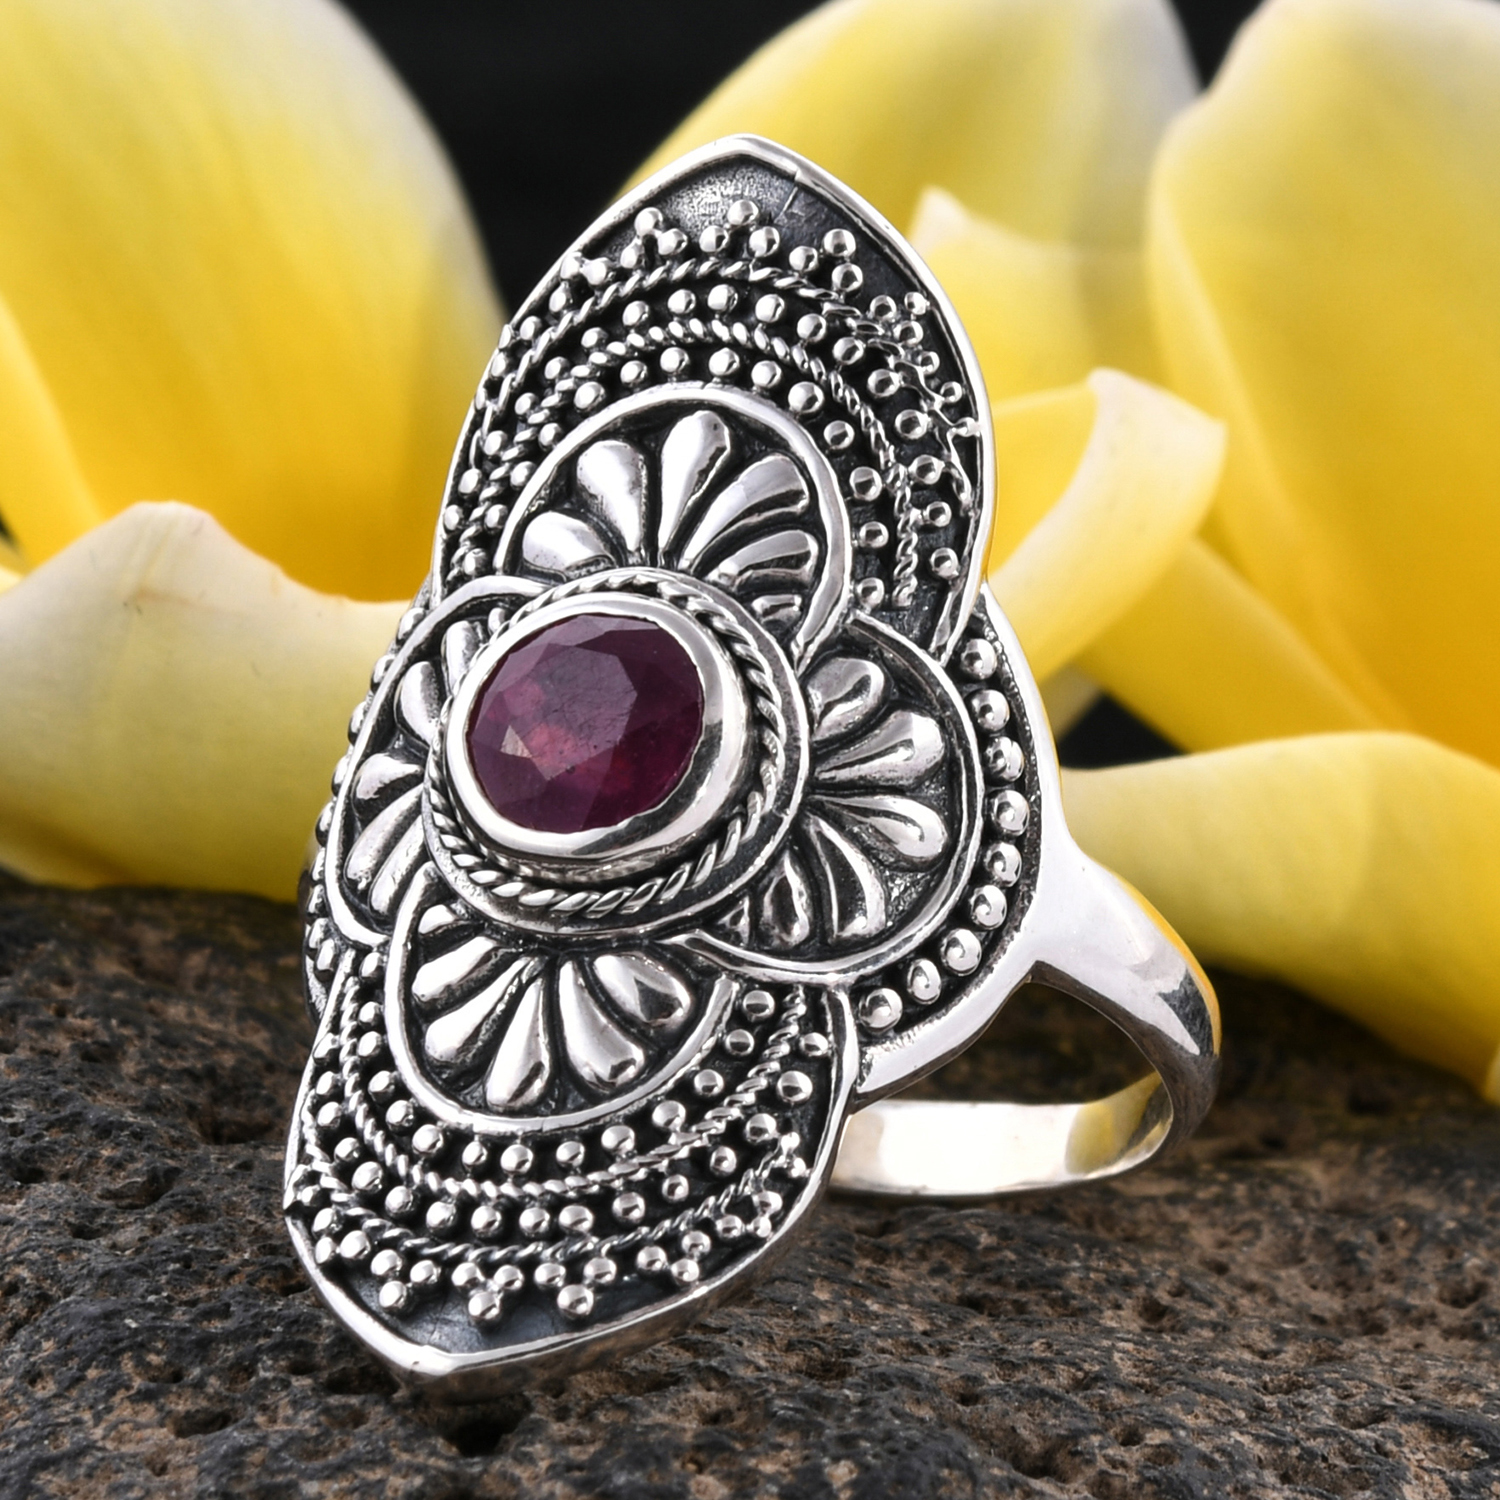 Bali Legacy Niassa Ruby Ring in Sterling Silver (Size 9.0) 1.72 ctw